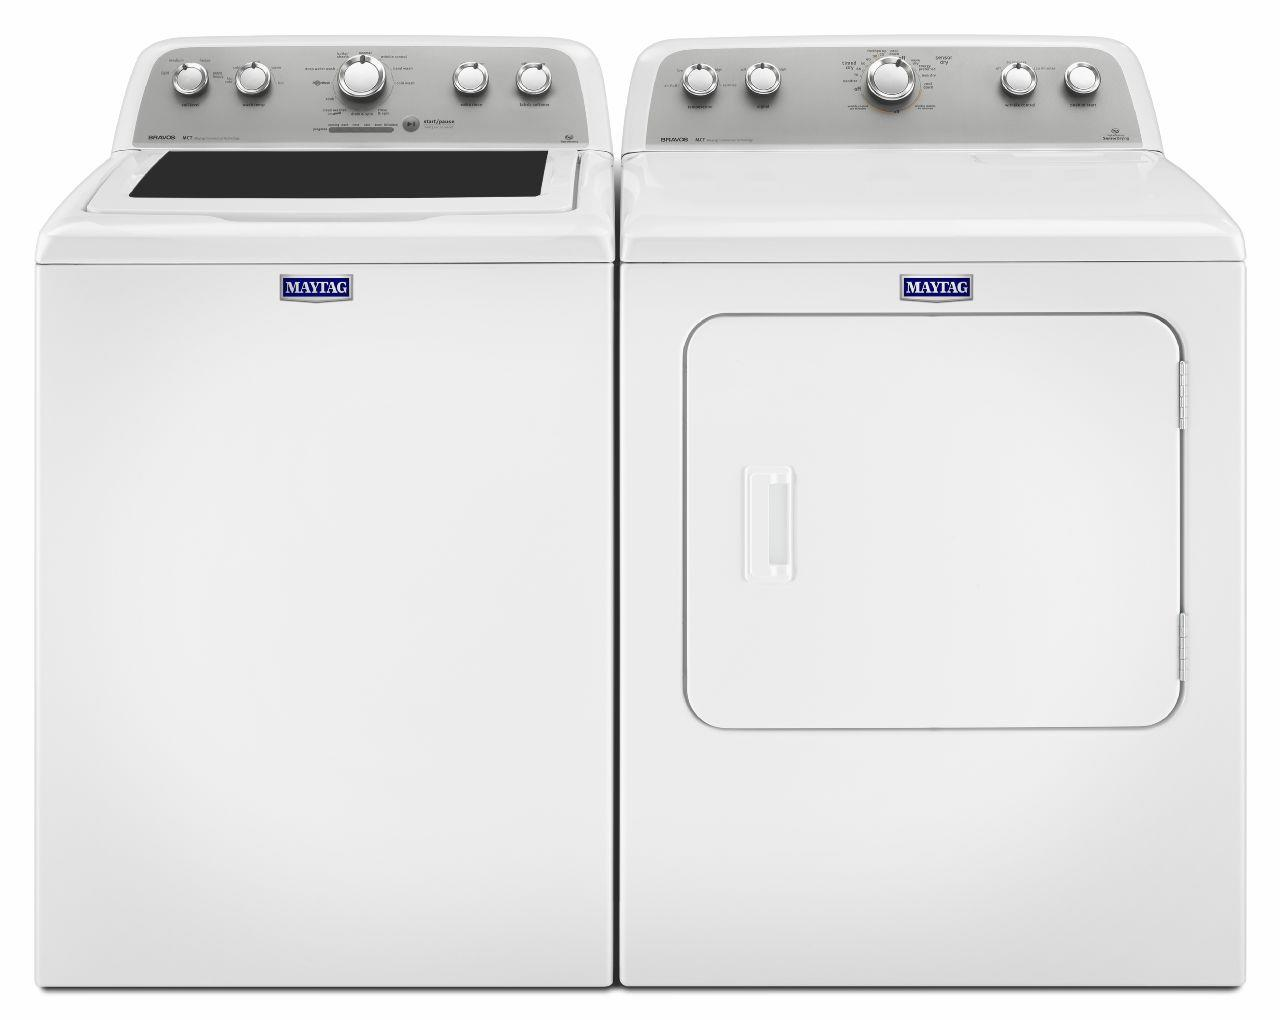 Maytag Washer and Dryer Sets Top Load Washer and Electric Dryer - Item Number: MVWX655DW+MEDX655DW